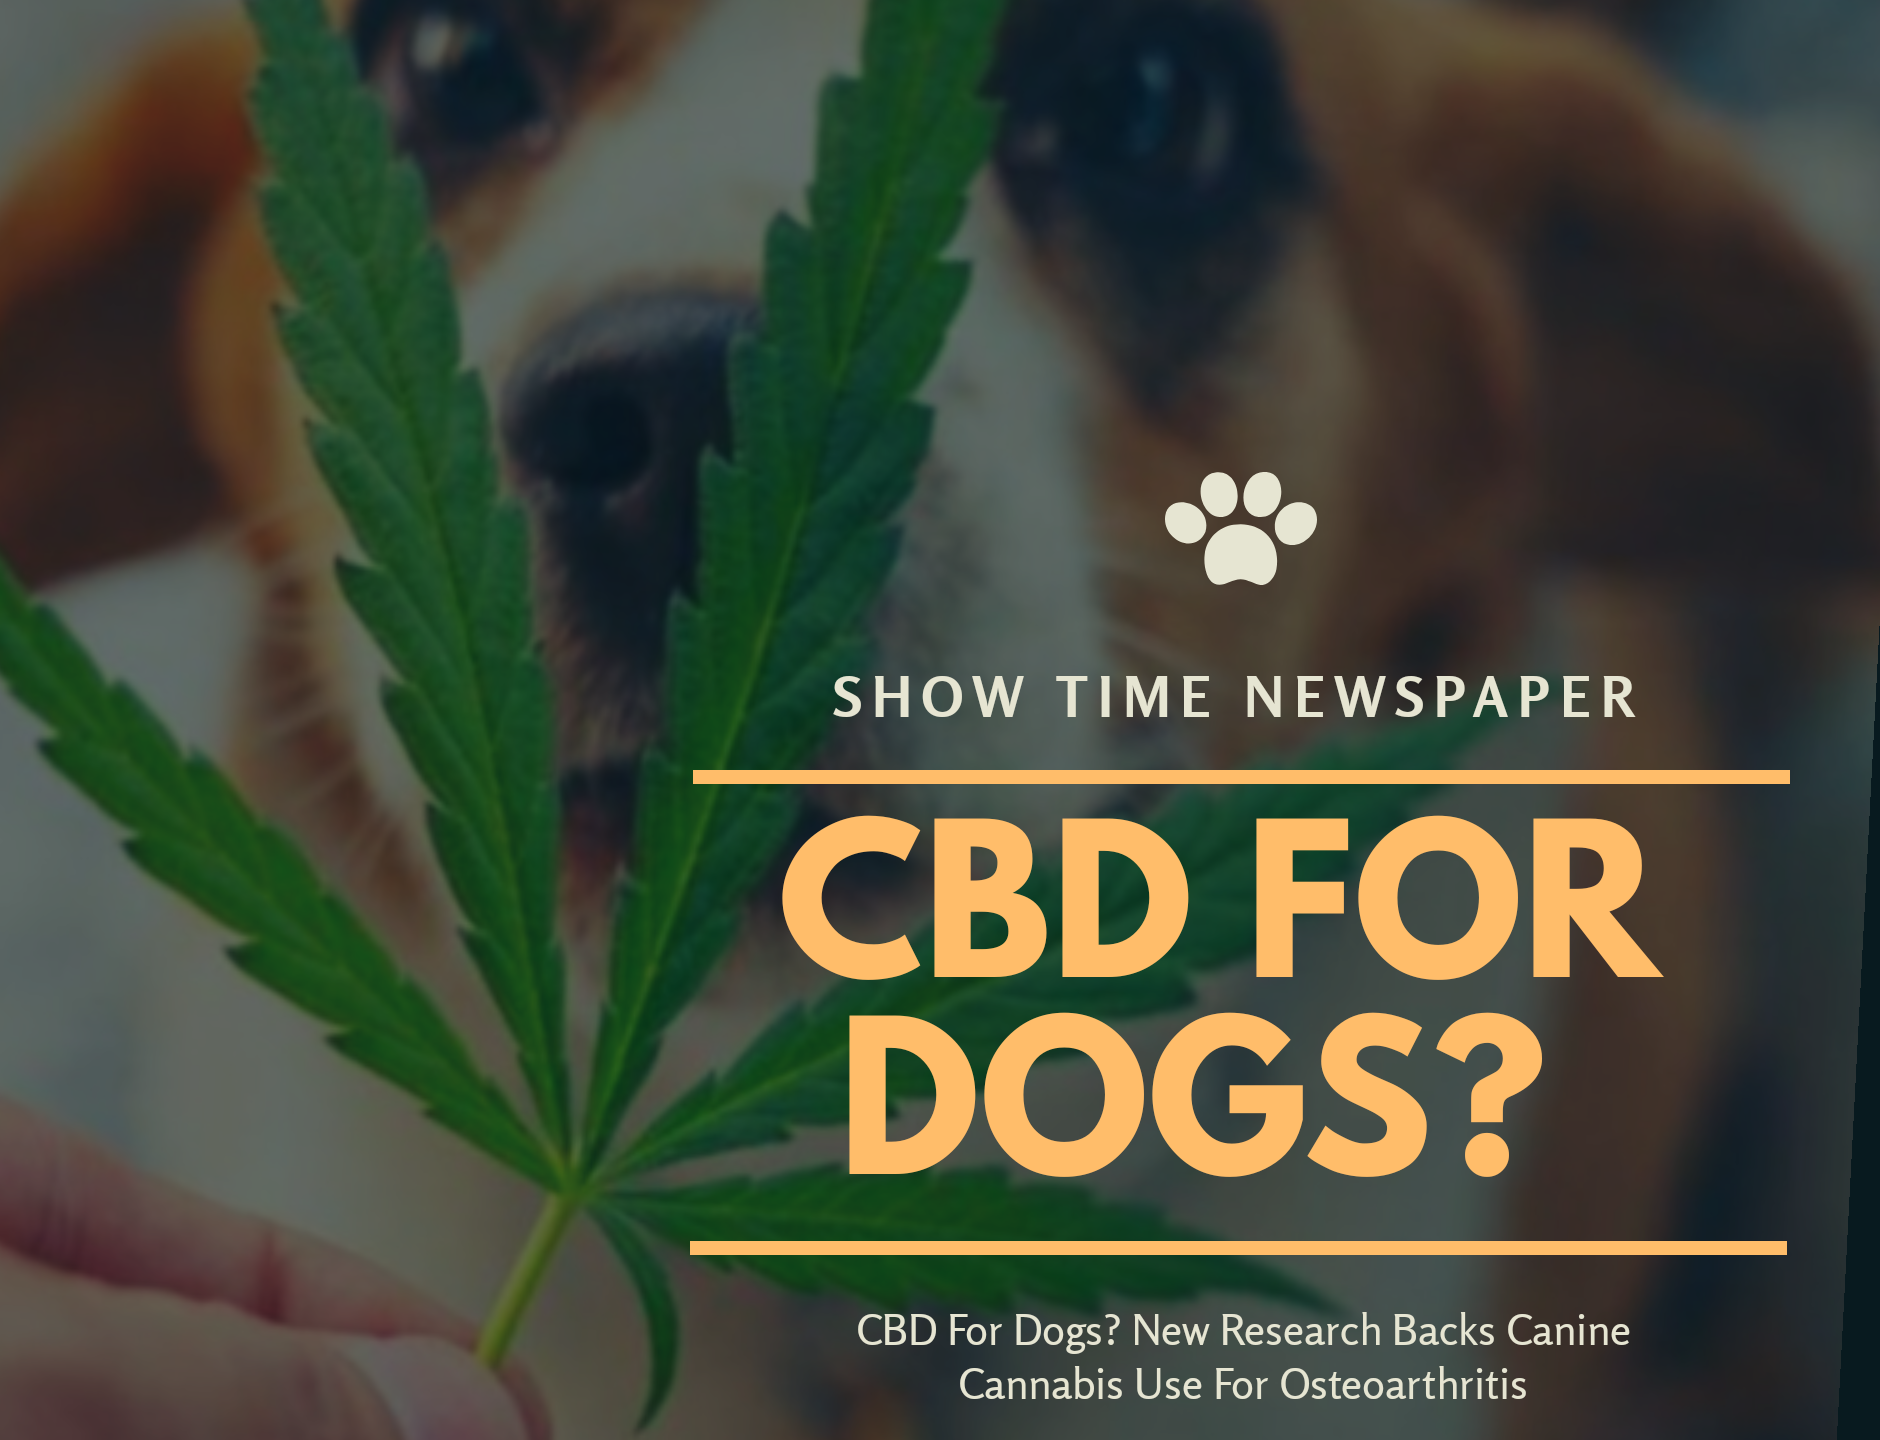 Brett Hartmann gives his dogs Cayley, a six-year-old-Labrador Retriever drops of a cannabis based medicinal tincture to treat hip pain and anxiety. New research supports CBD for canine osteoarthritis.